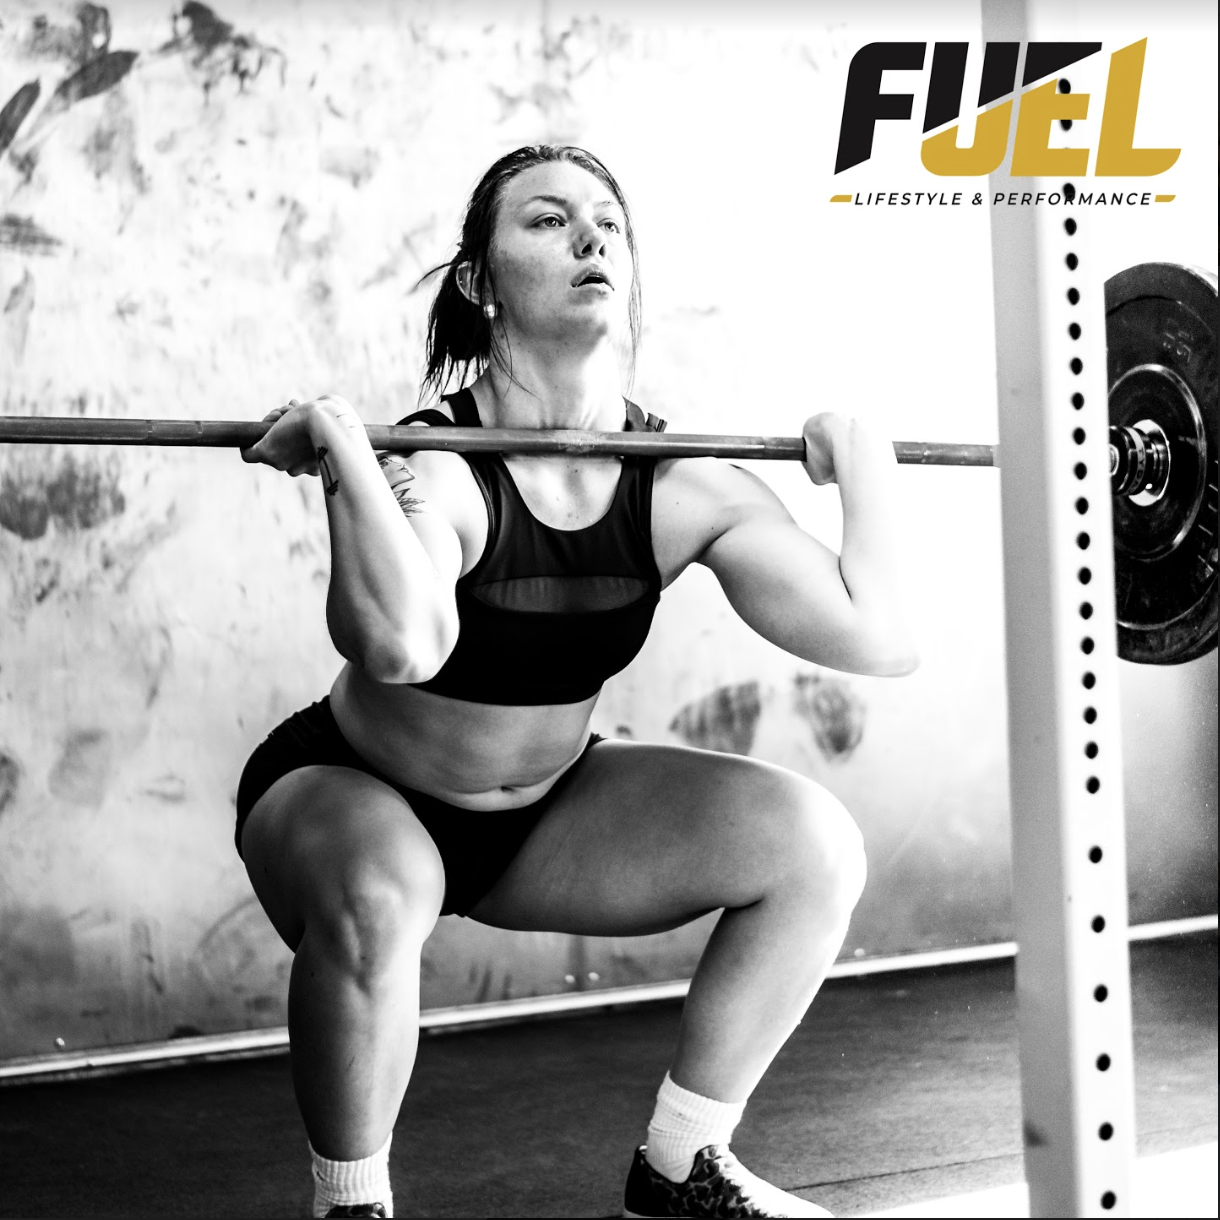 Mataya - My Fuel experience has been great from the beginning (April 2017). Fuel has helped me to reach many goals I never would have thought I could accomplish, while growing as a person and an athlete. The coaches and community at Fuel have supported me throughout my fitness journey as well as my life goals and challenges and I couldn't ask for anything more!